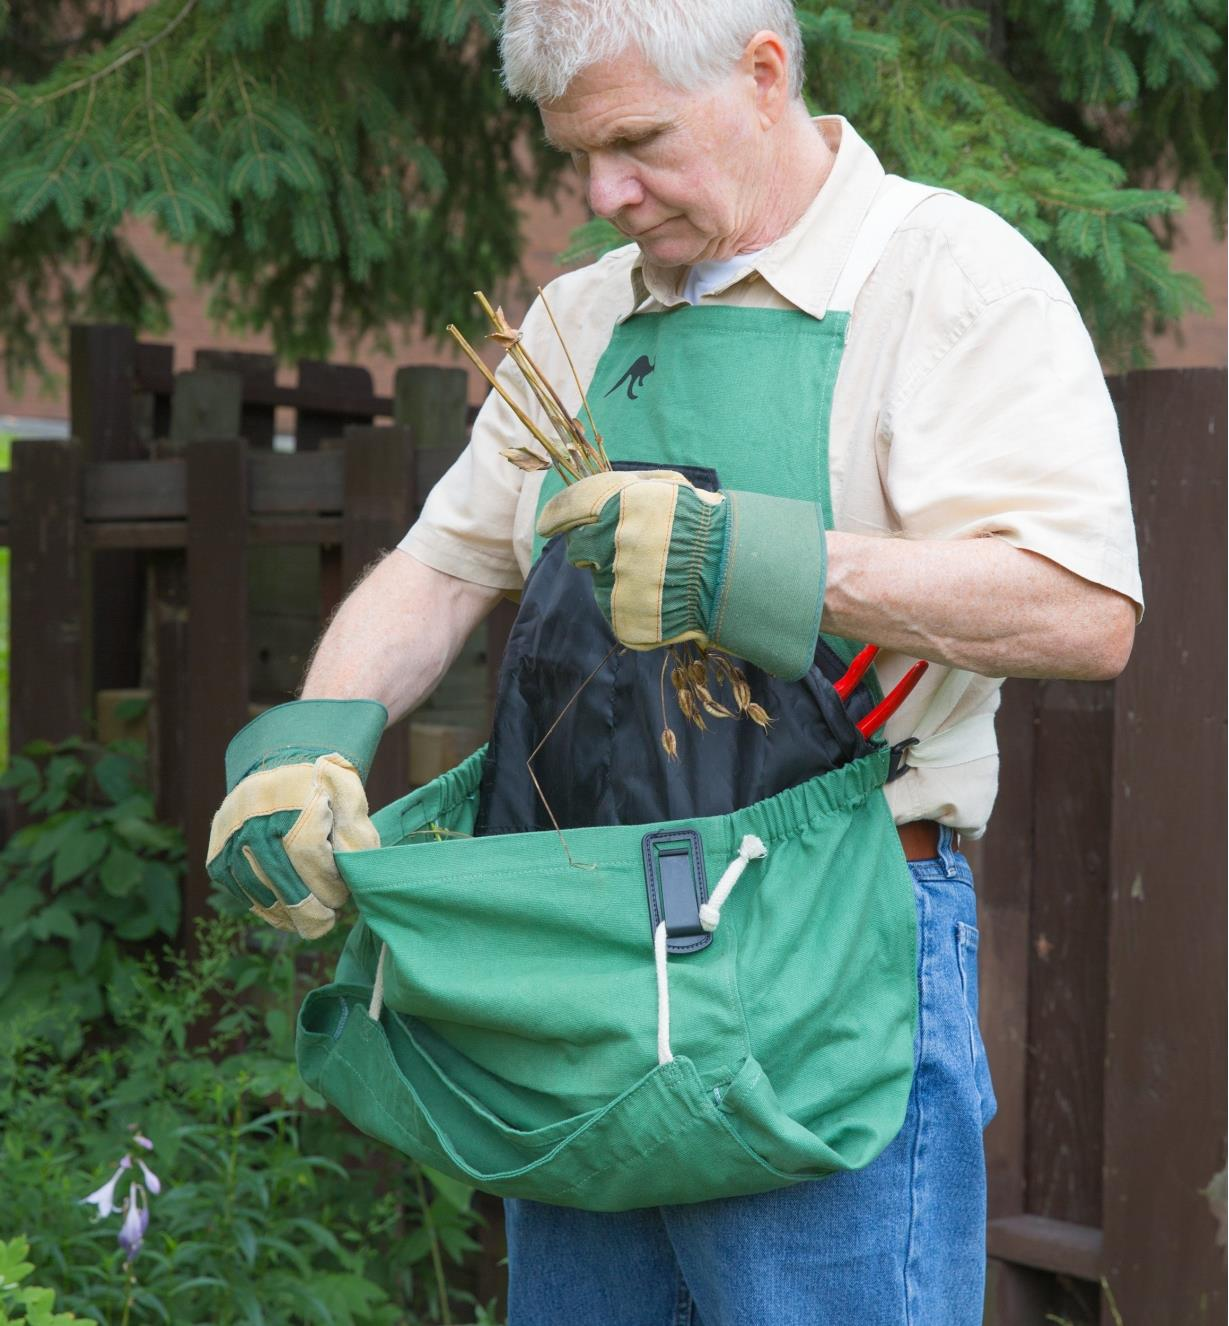 A man wearing the kangaroo pocket apron collects garden waste in the pocket